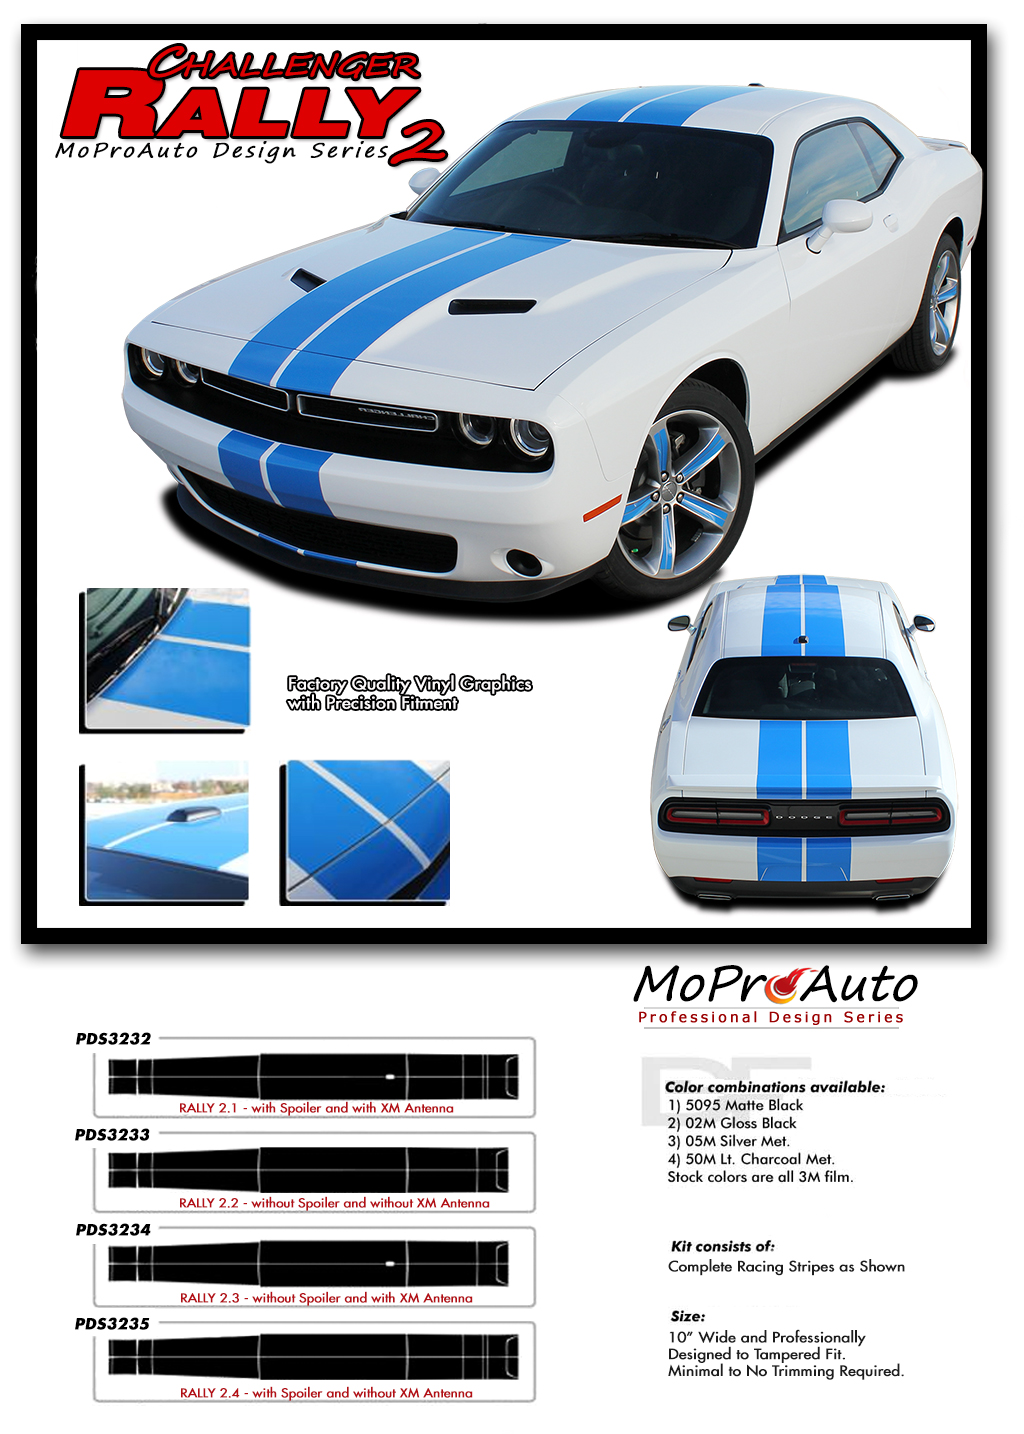 Decal Kits Product : Challenger rally racing stripes vinyl graphic